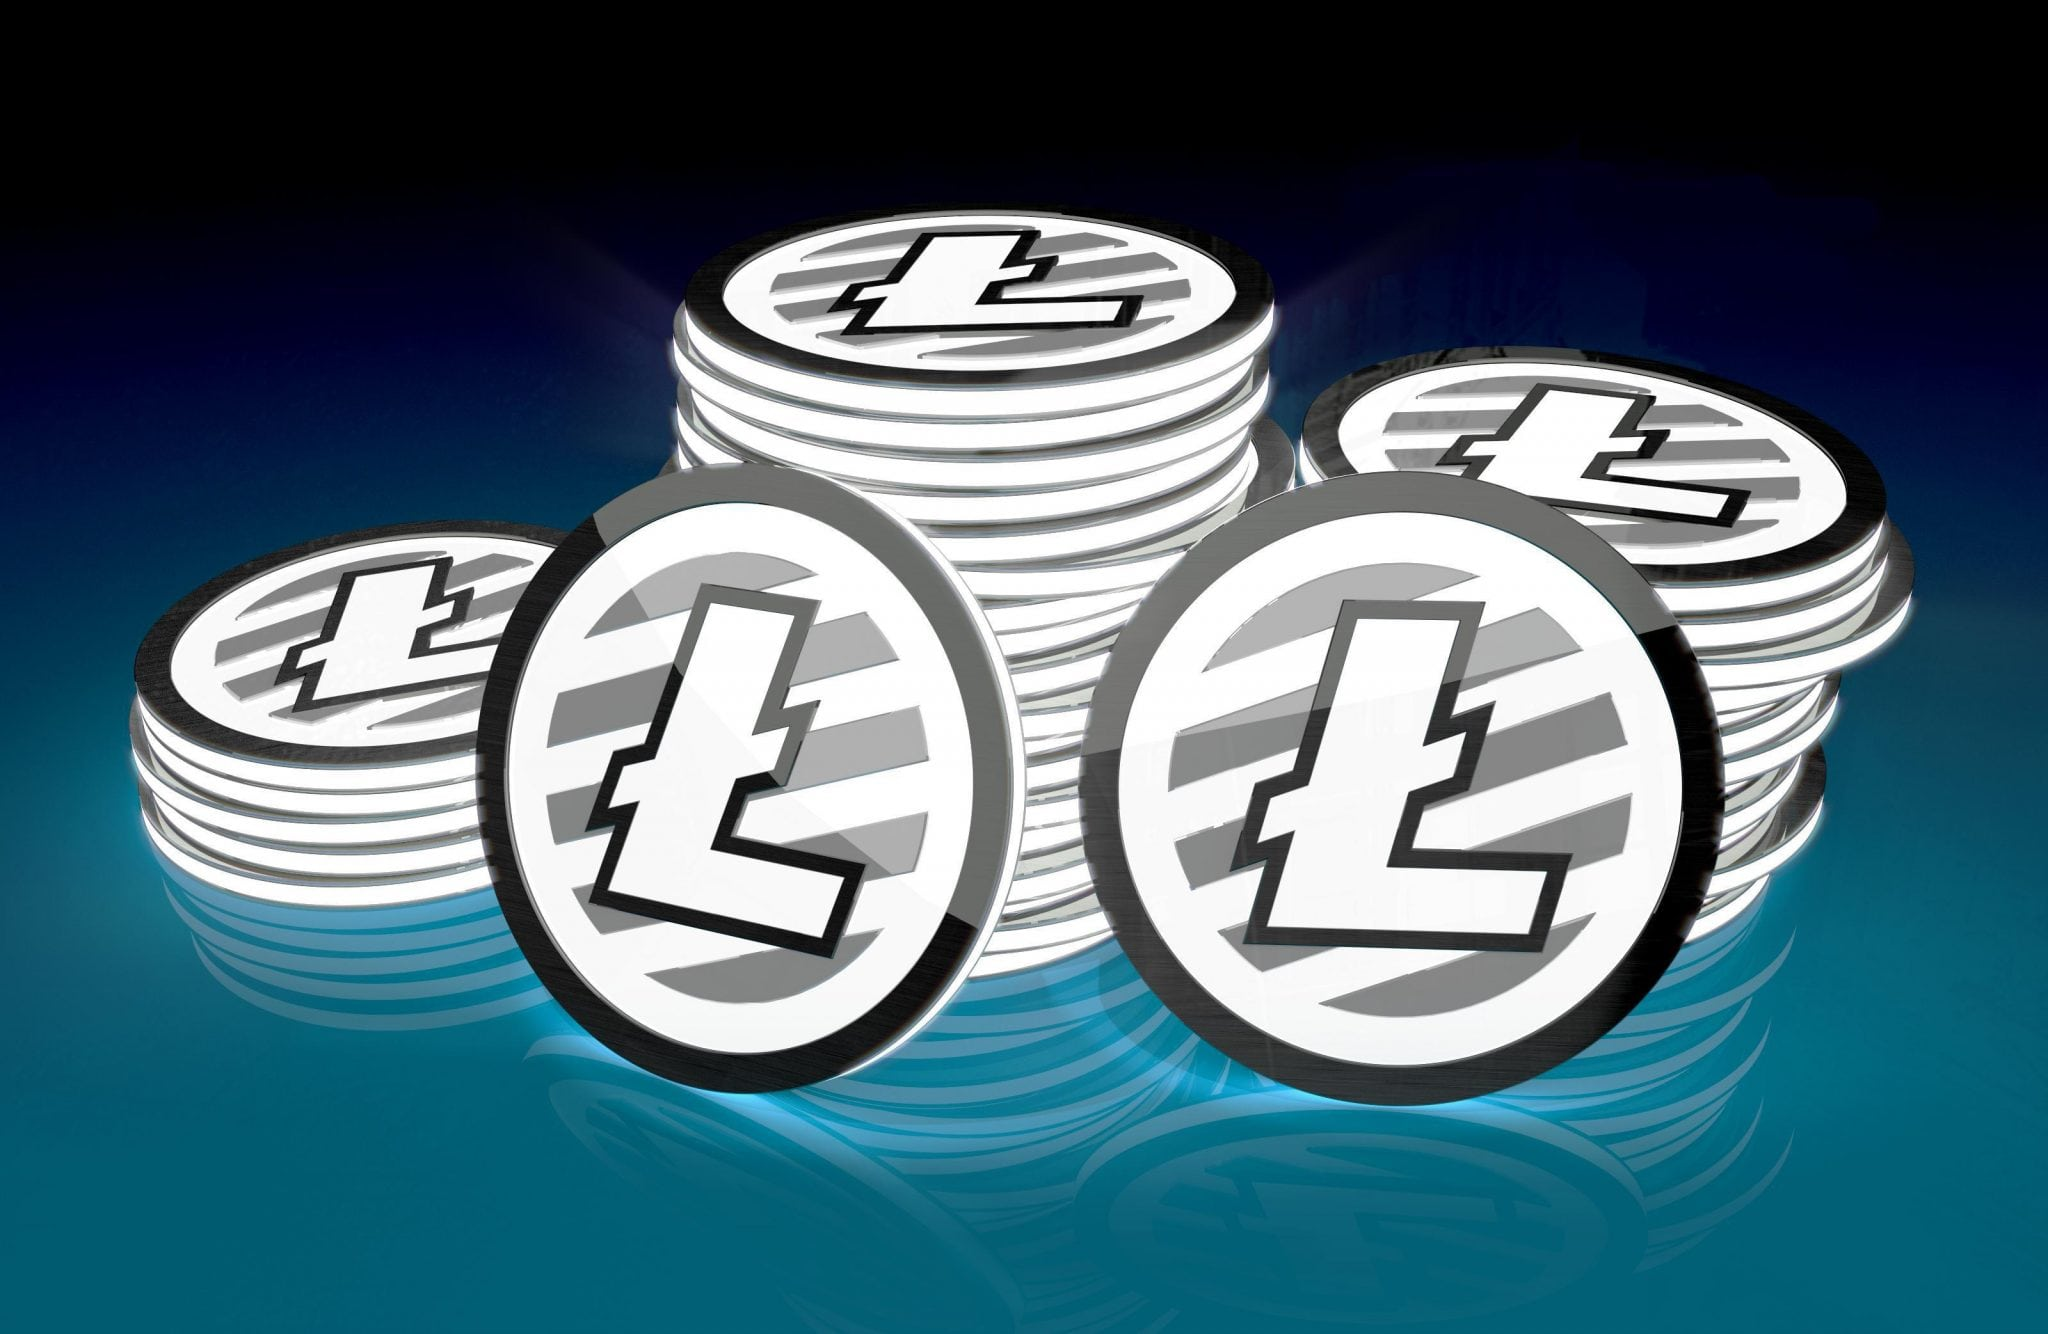 Litecoin LTC 2 - Litecoin (LTC) To Surpass Its All-time High by the End of 2018